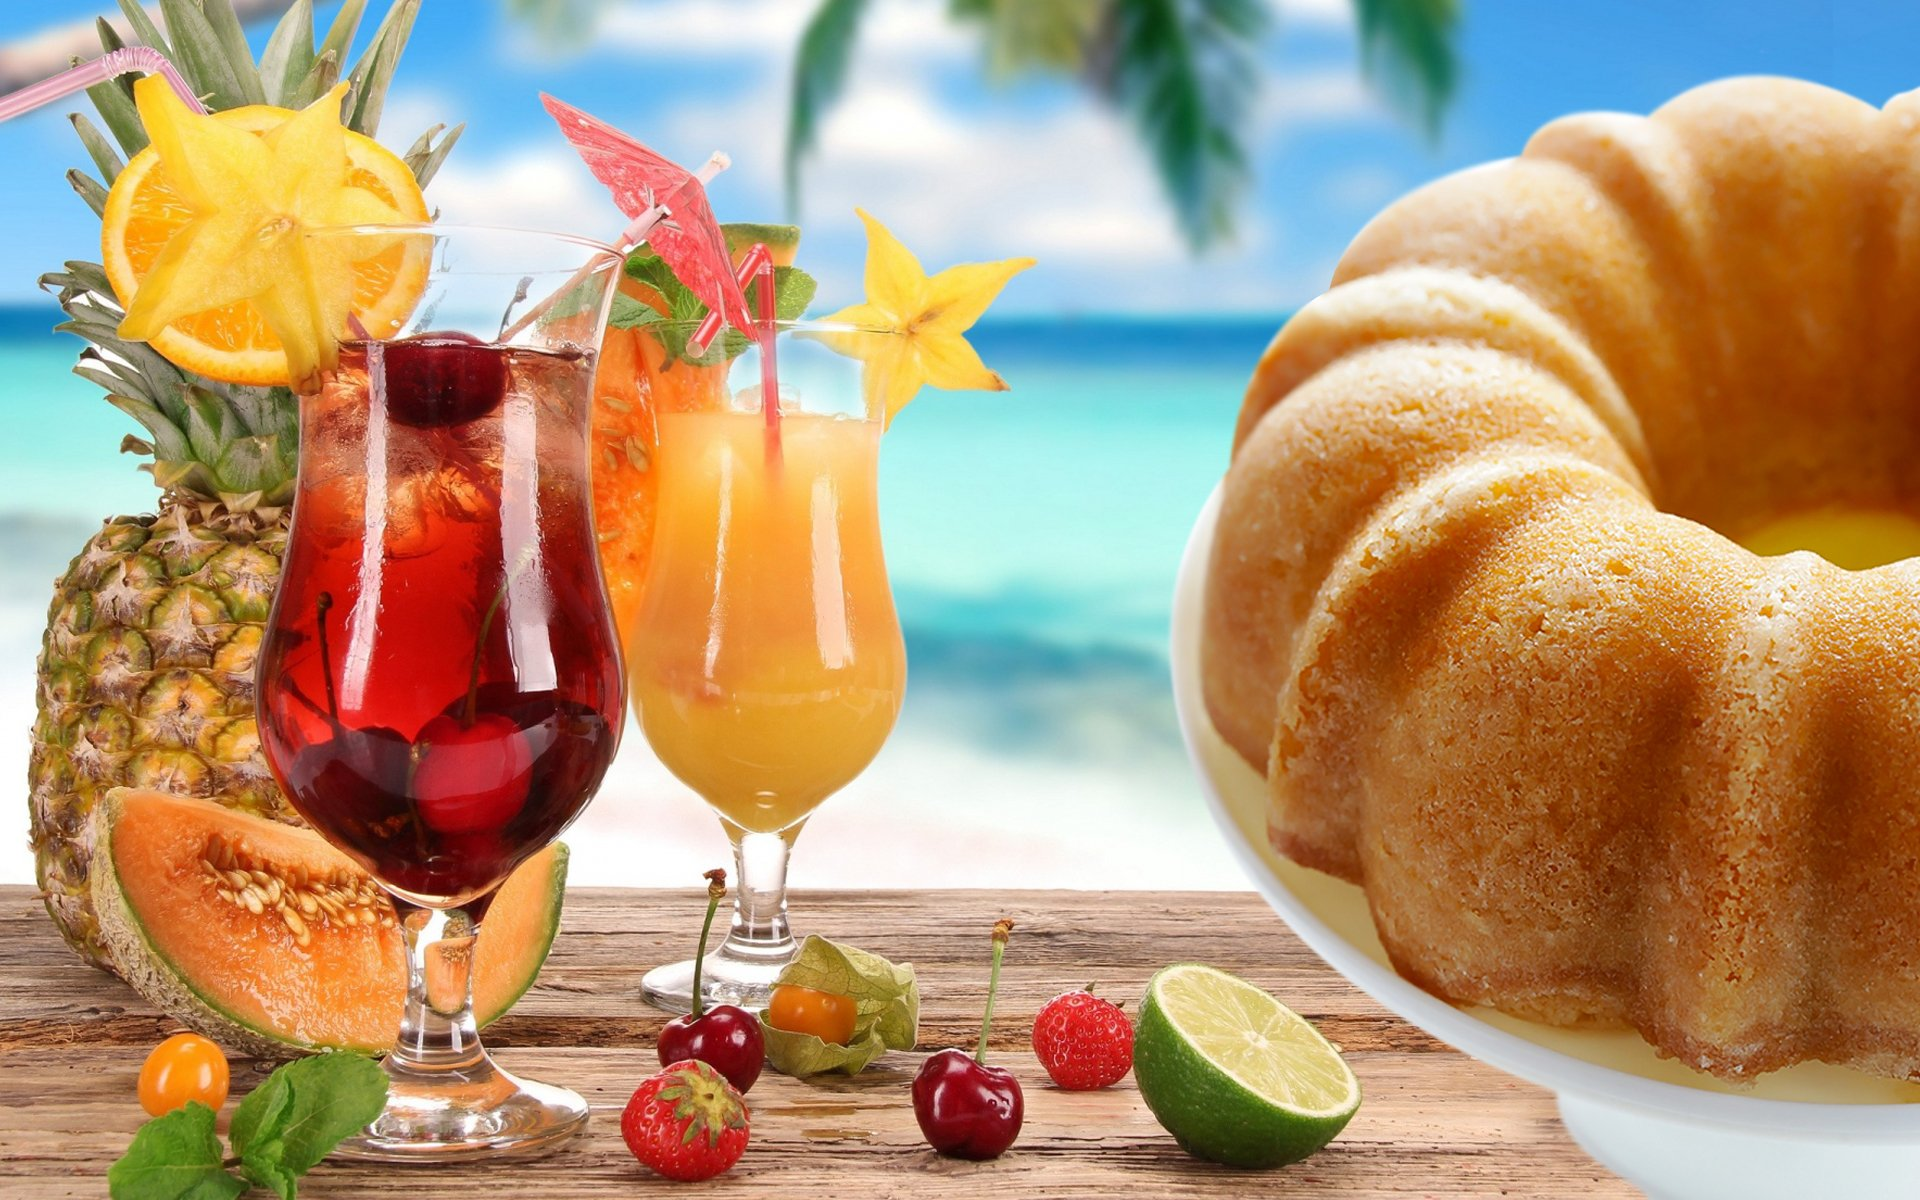 The Bahamas Rum Cake Factory Ole Nau Banana Rum Cake, 20 oz ... on punch in a glass, punch splash, punch beverage, punch recipes, punch soda, punch with fruit,